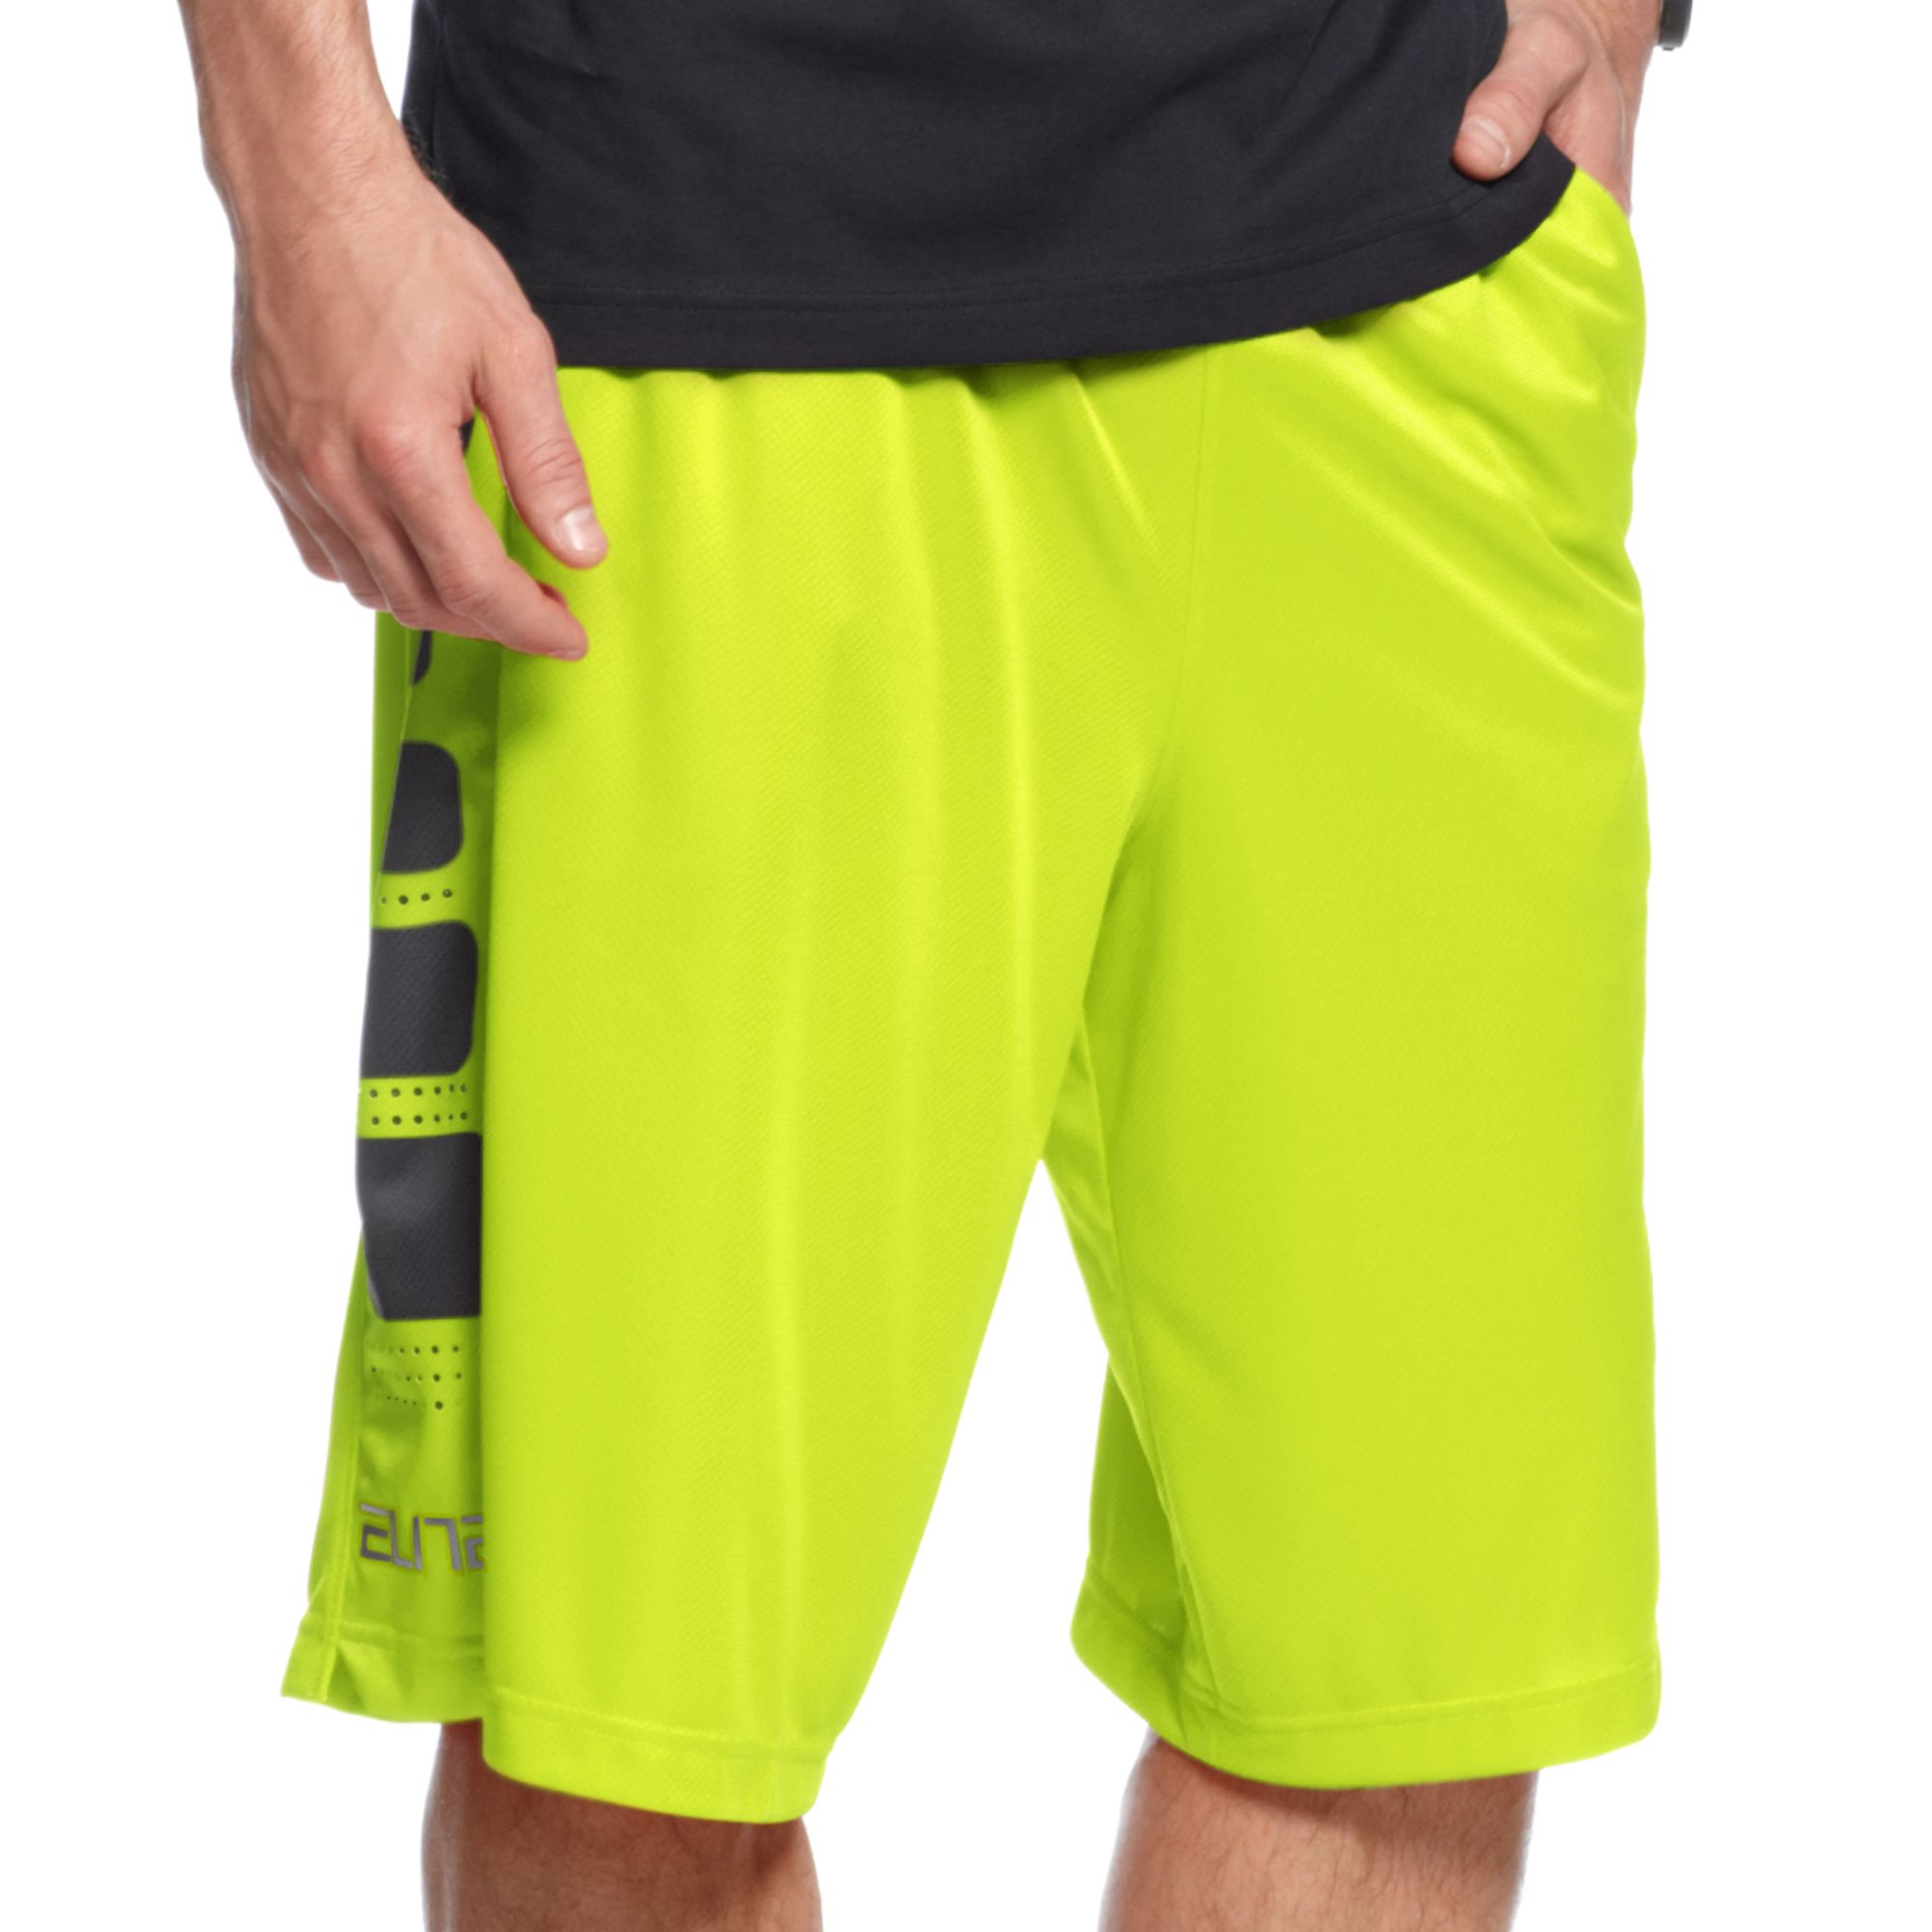 lyst nike elite stripe basketball shorts in yellow for men. Black Bedroom Furniture Sets. Home Design Ideas